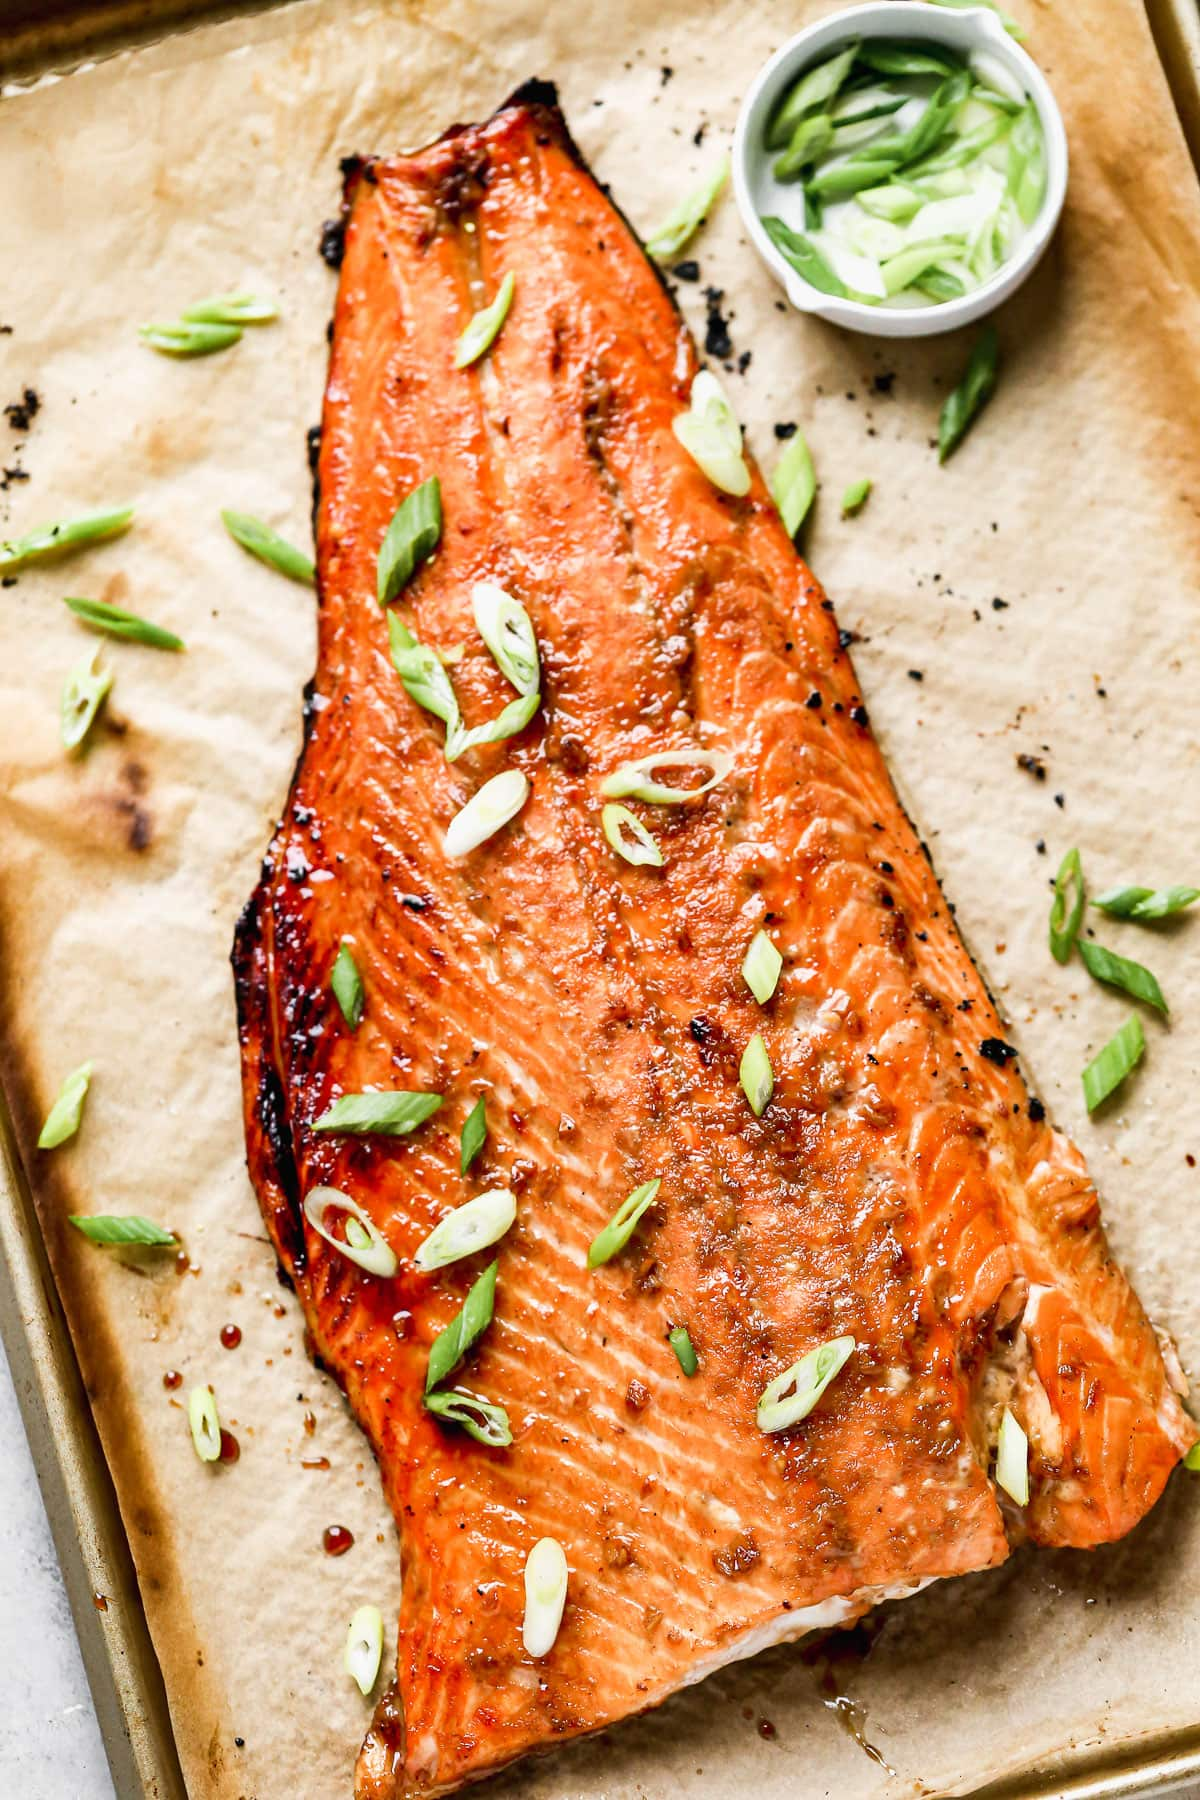 Healthy bourbon glazed salmon with green onions